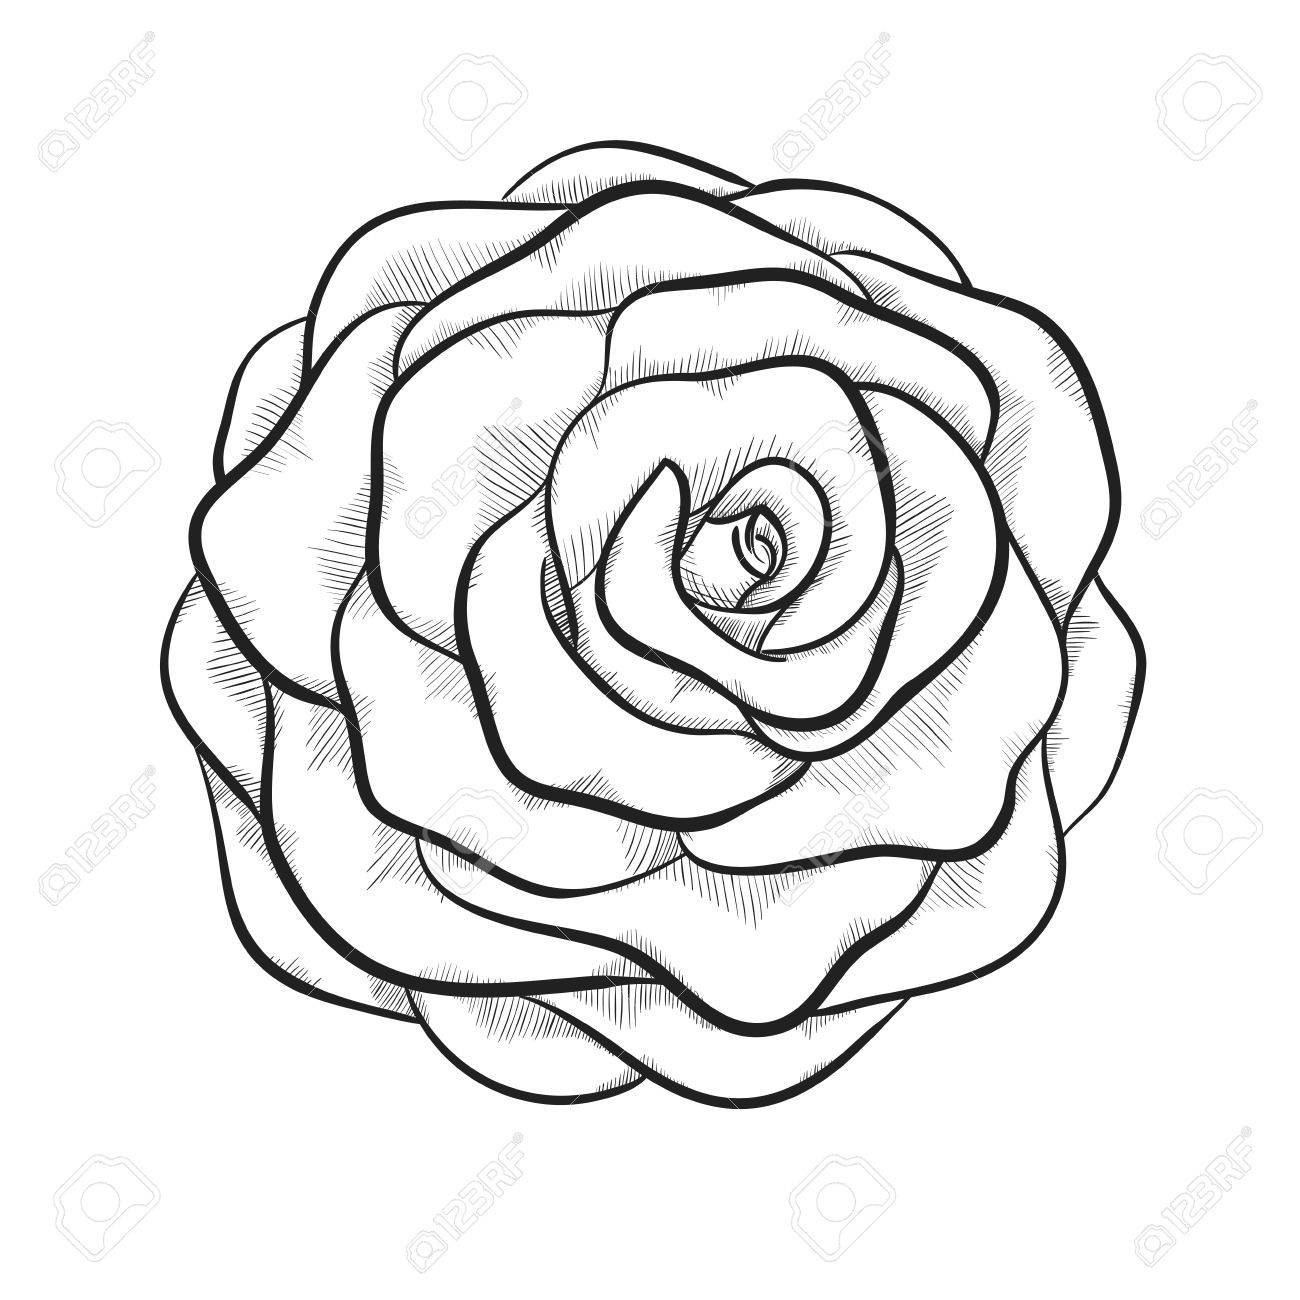 1300x1300 Black And White Rose Pencil Drawing Vector Free Flowers Line